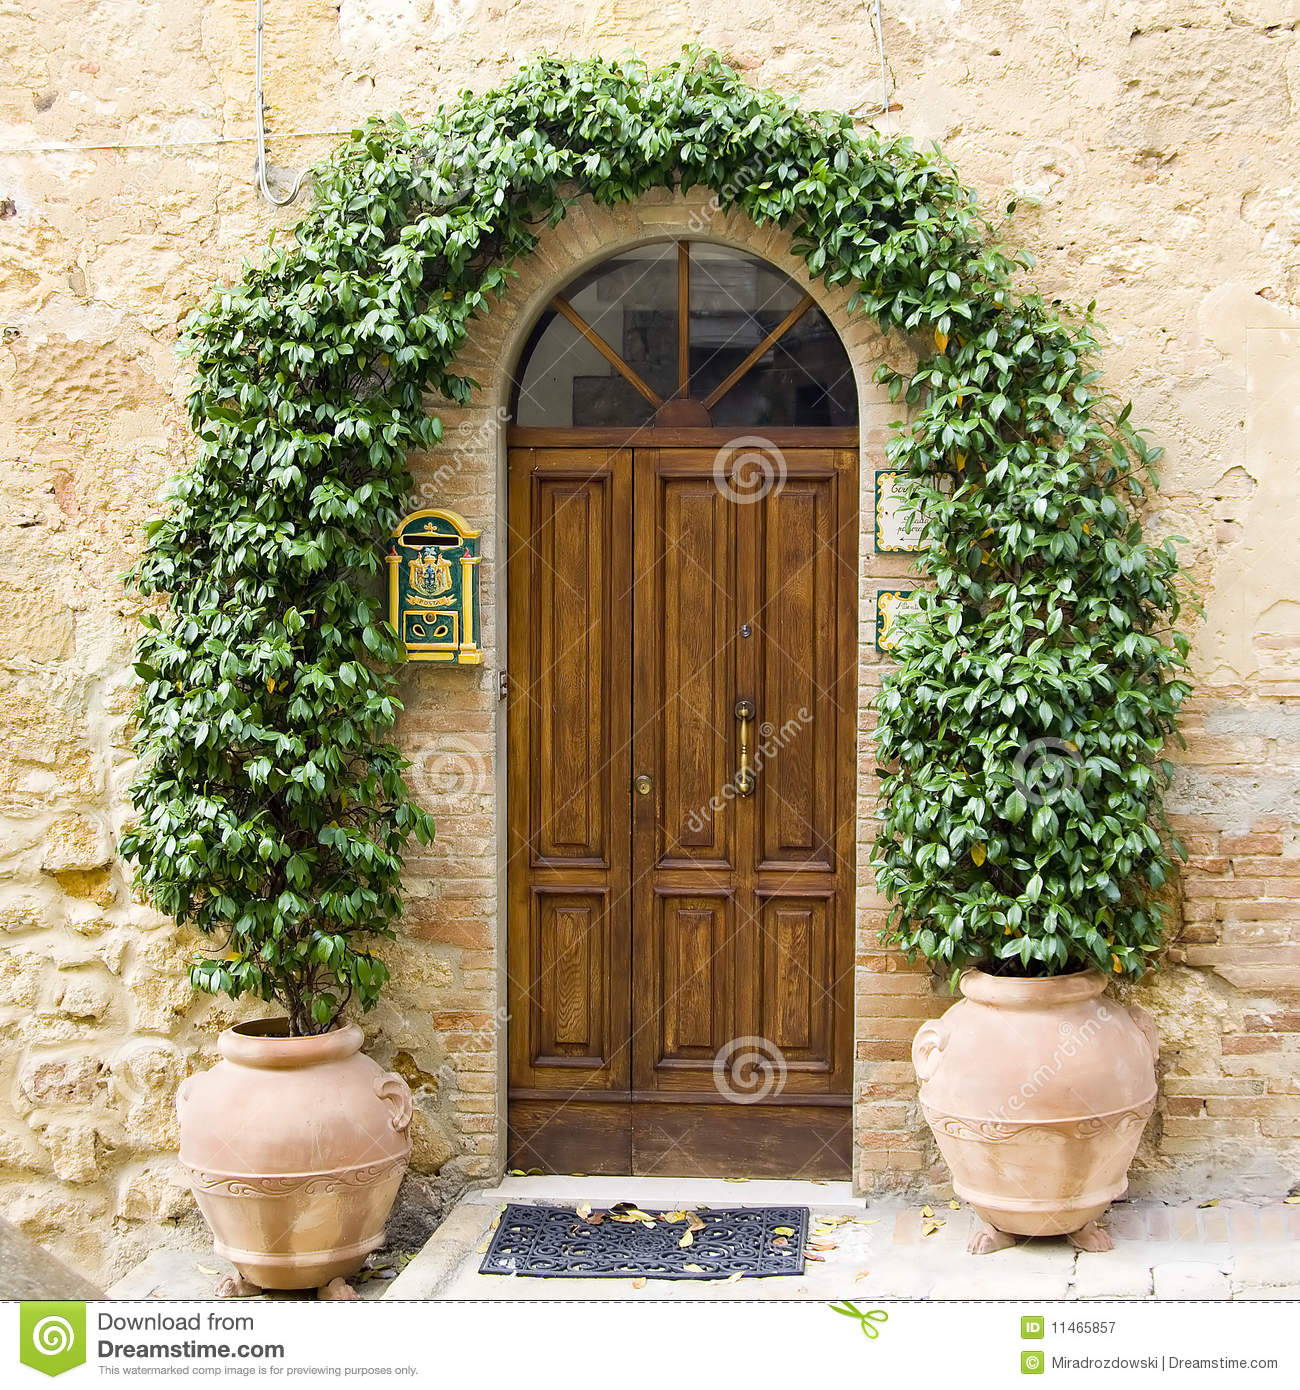 Lovely tuscan doors : tuscan doors - pezcame.com